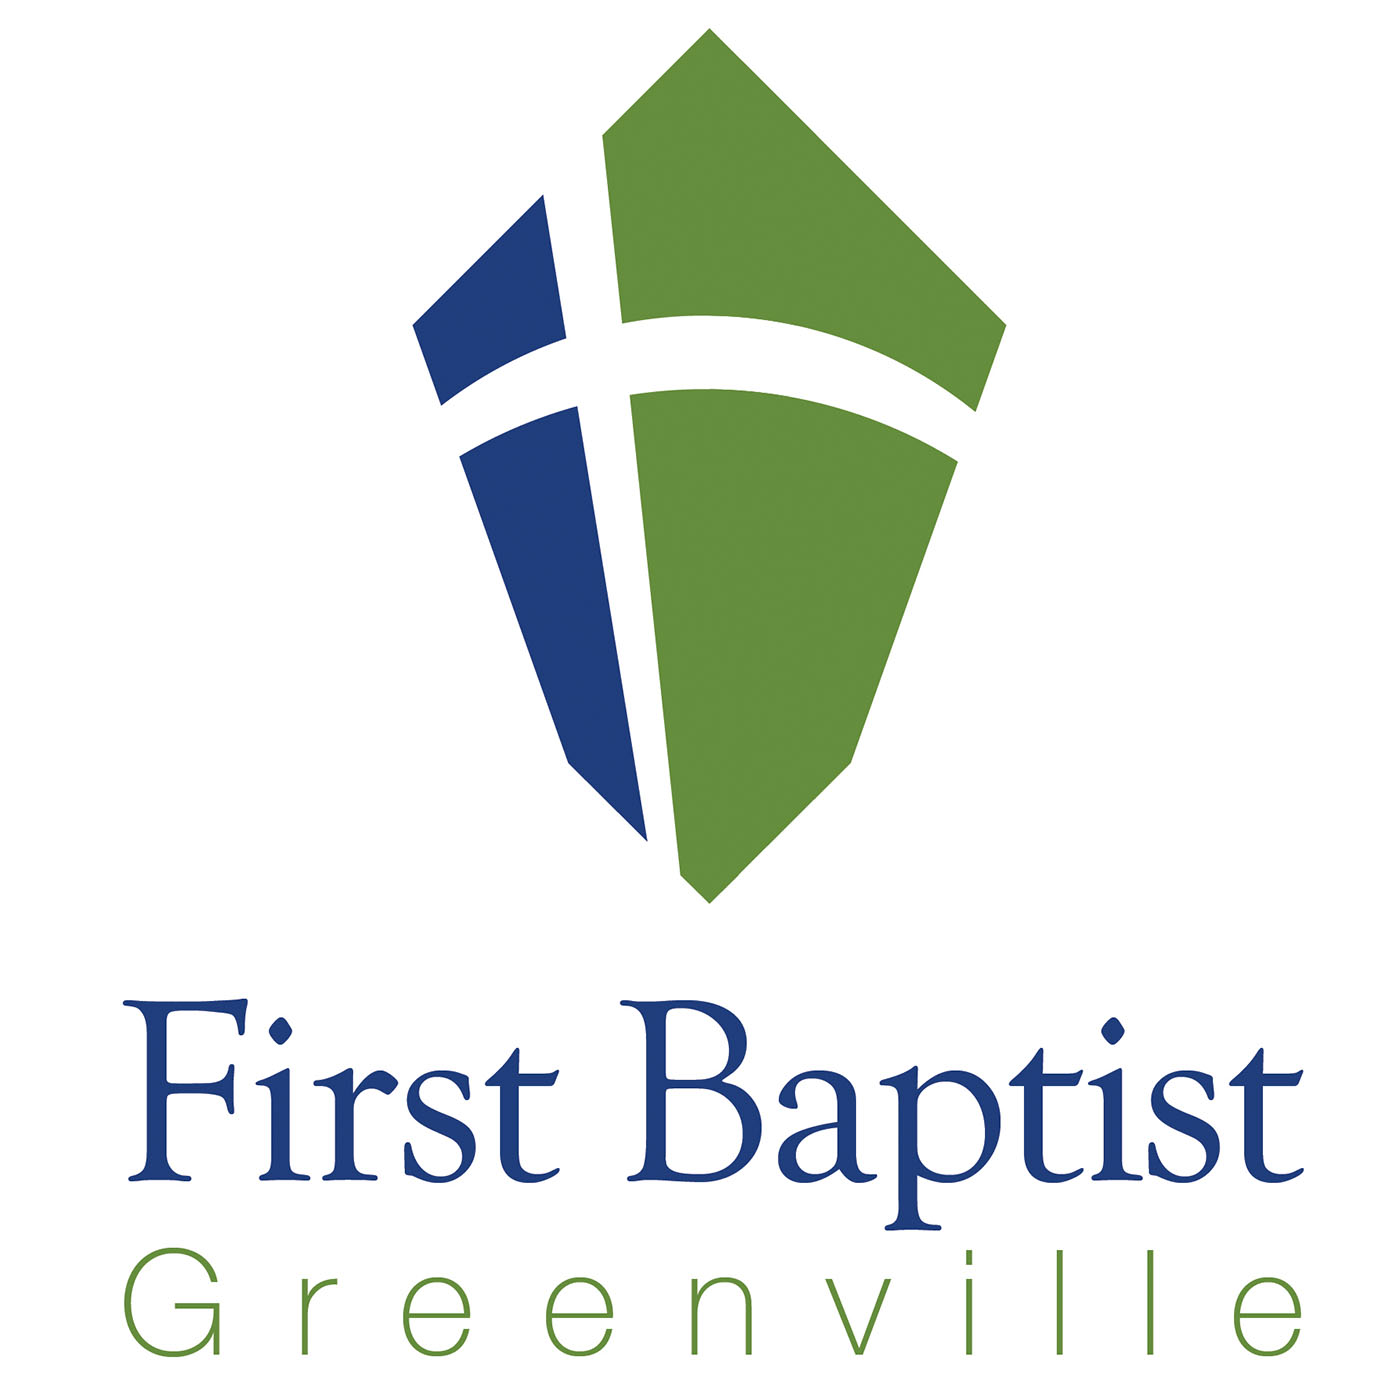 First Baptist Church – Greenville, South Carolina